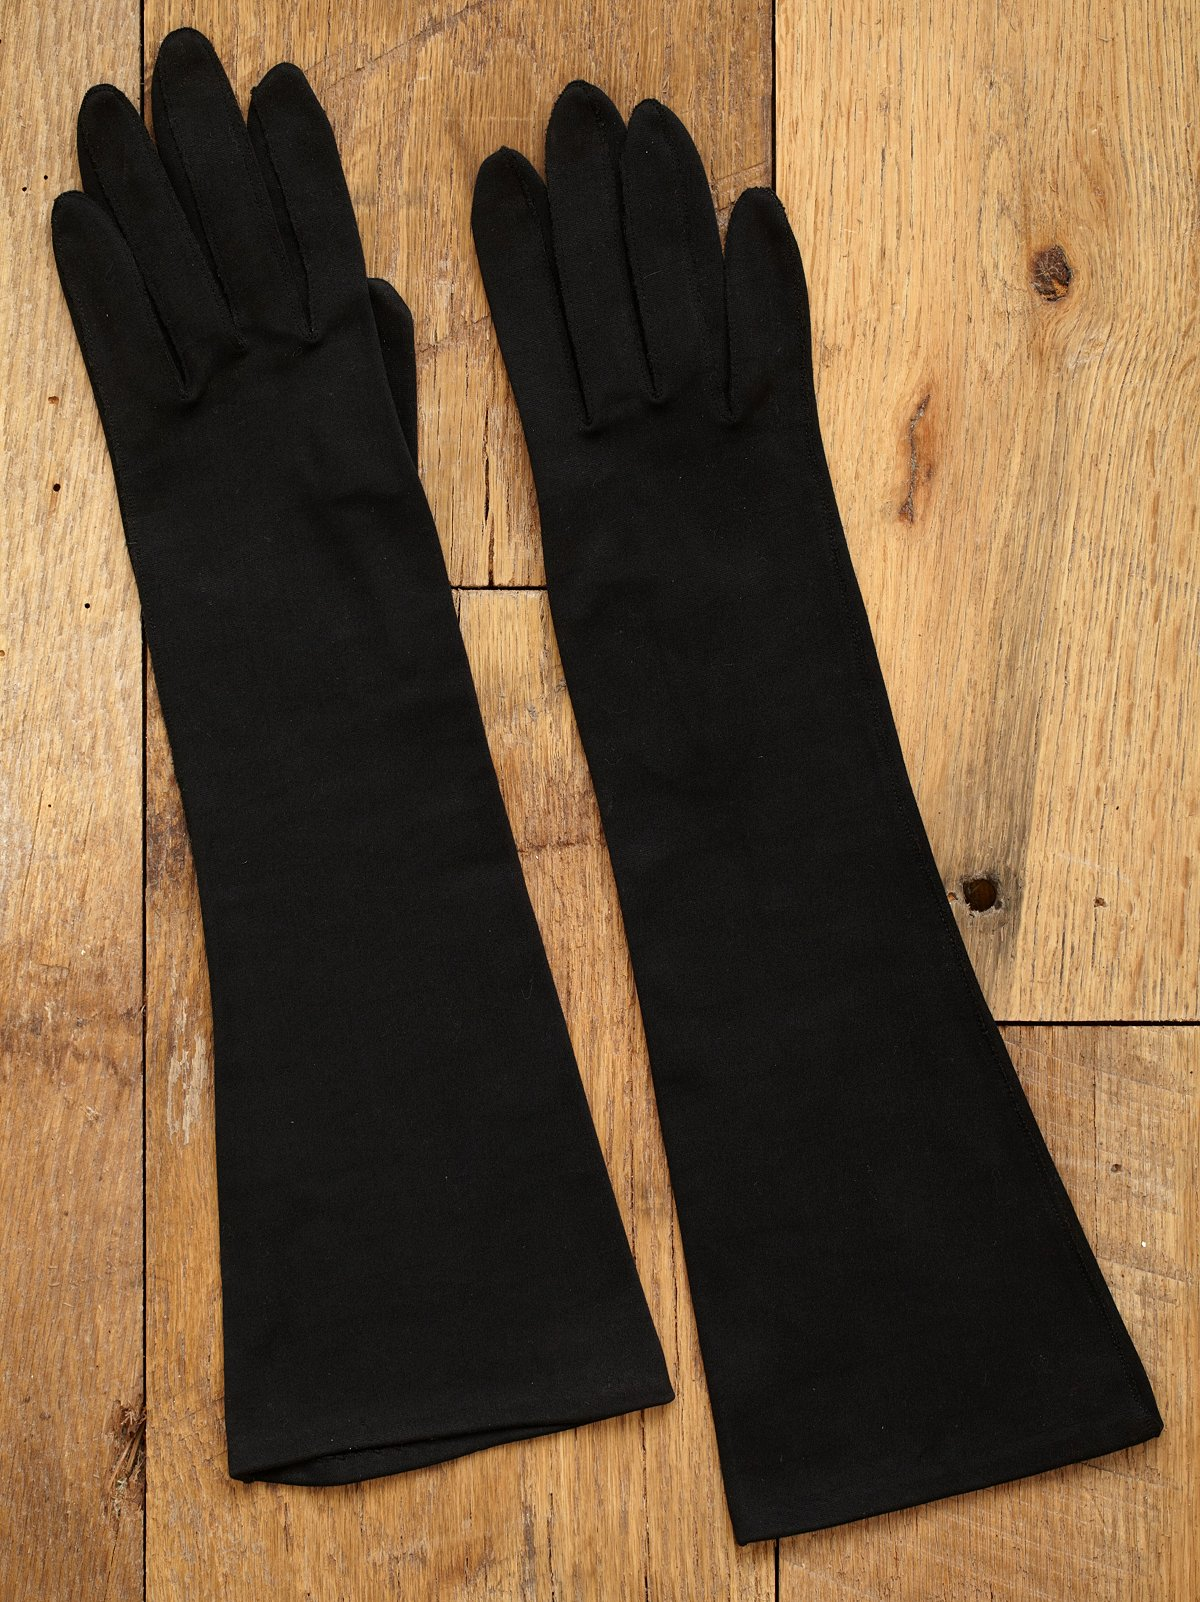 Vintage 1950s Long Black Gloves